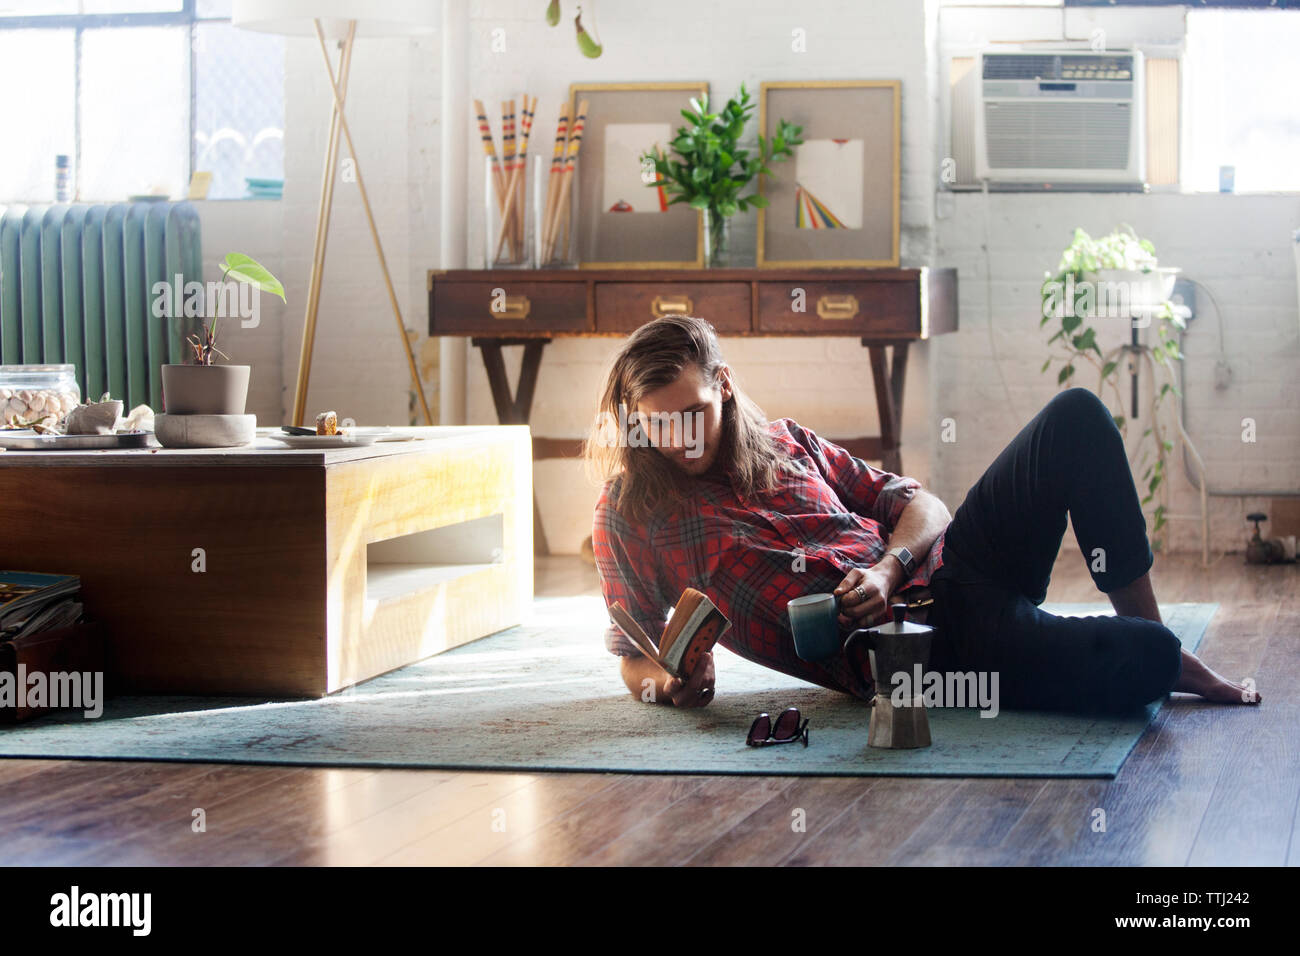 Man reading book while leaning on elbow at home - Stock Image